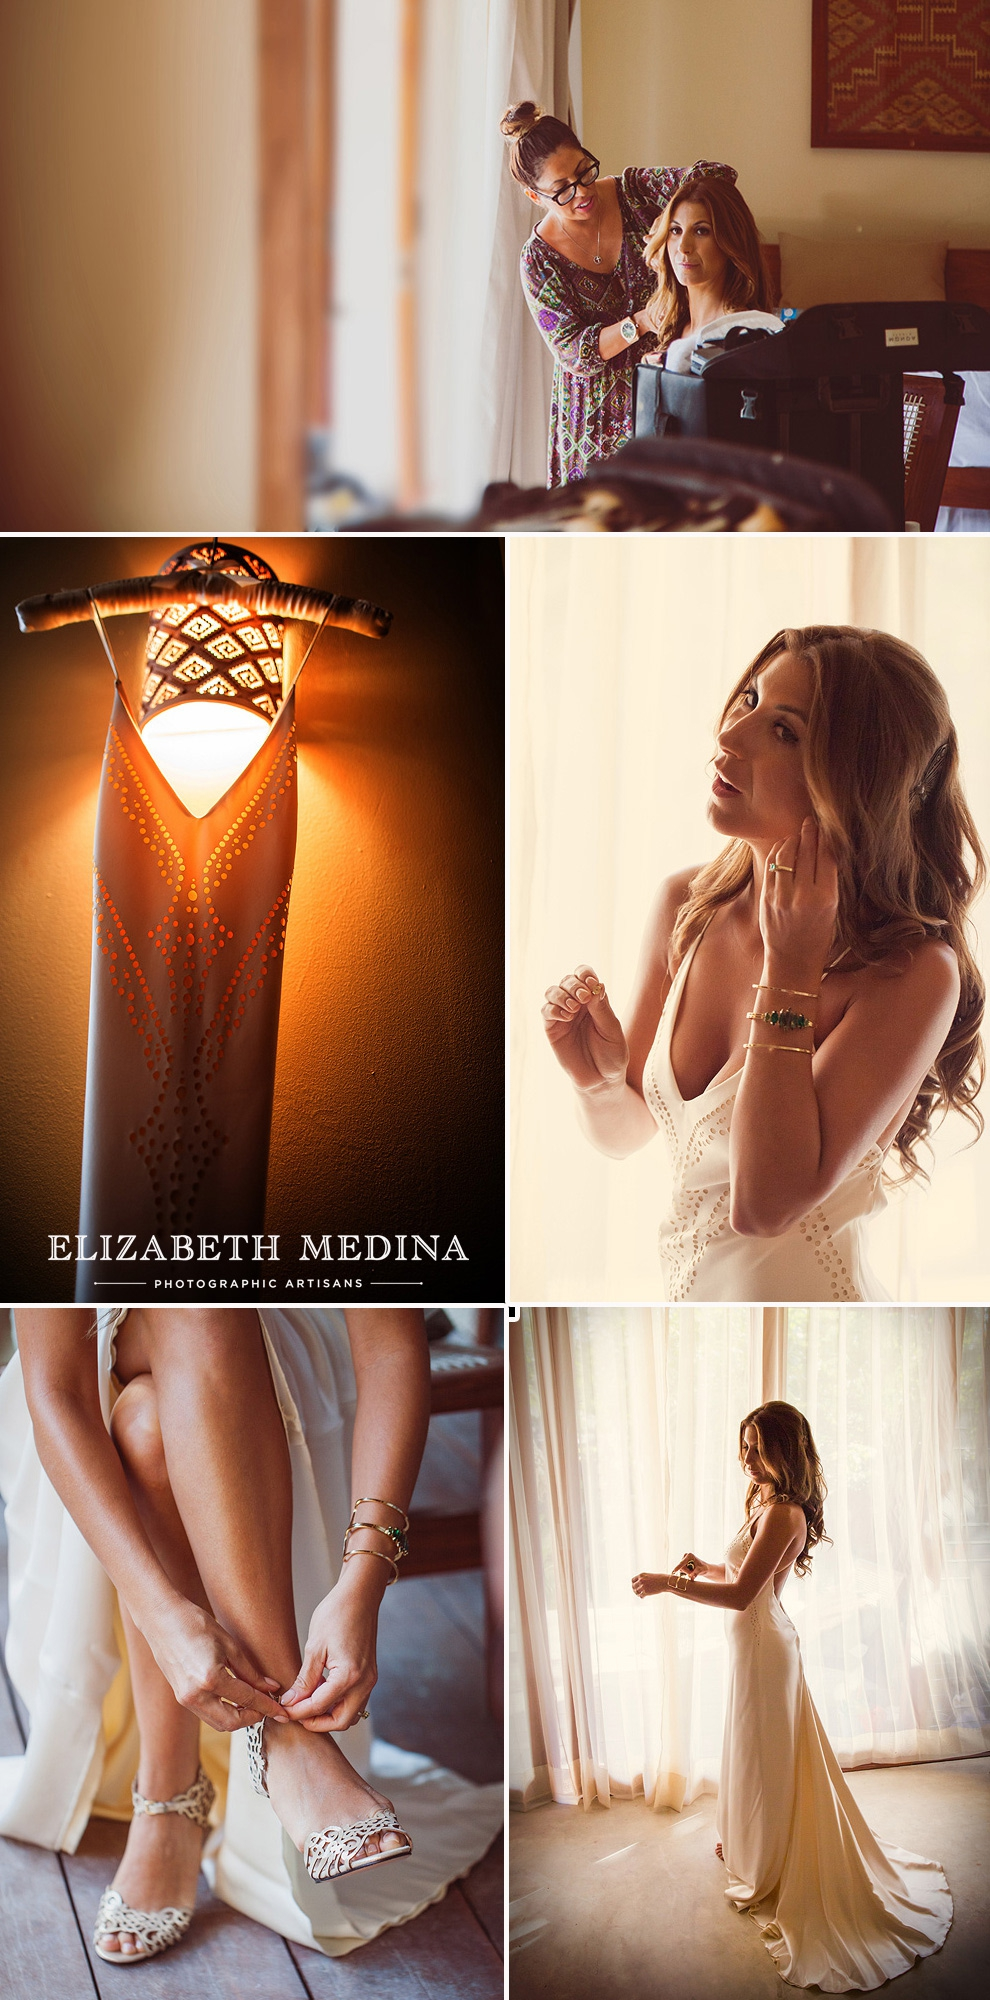 elizabeth medina photography tulum wedding photographer_42 Mayan Ceremony, Tulum, Mexico  12 13 14